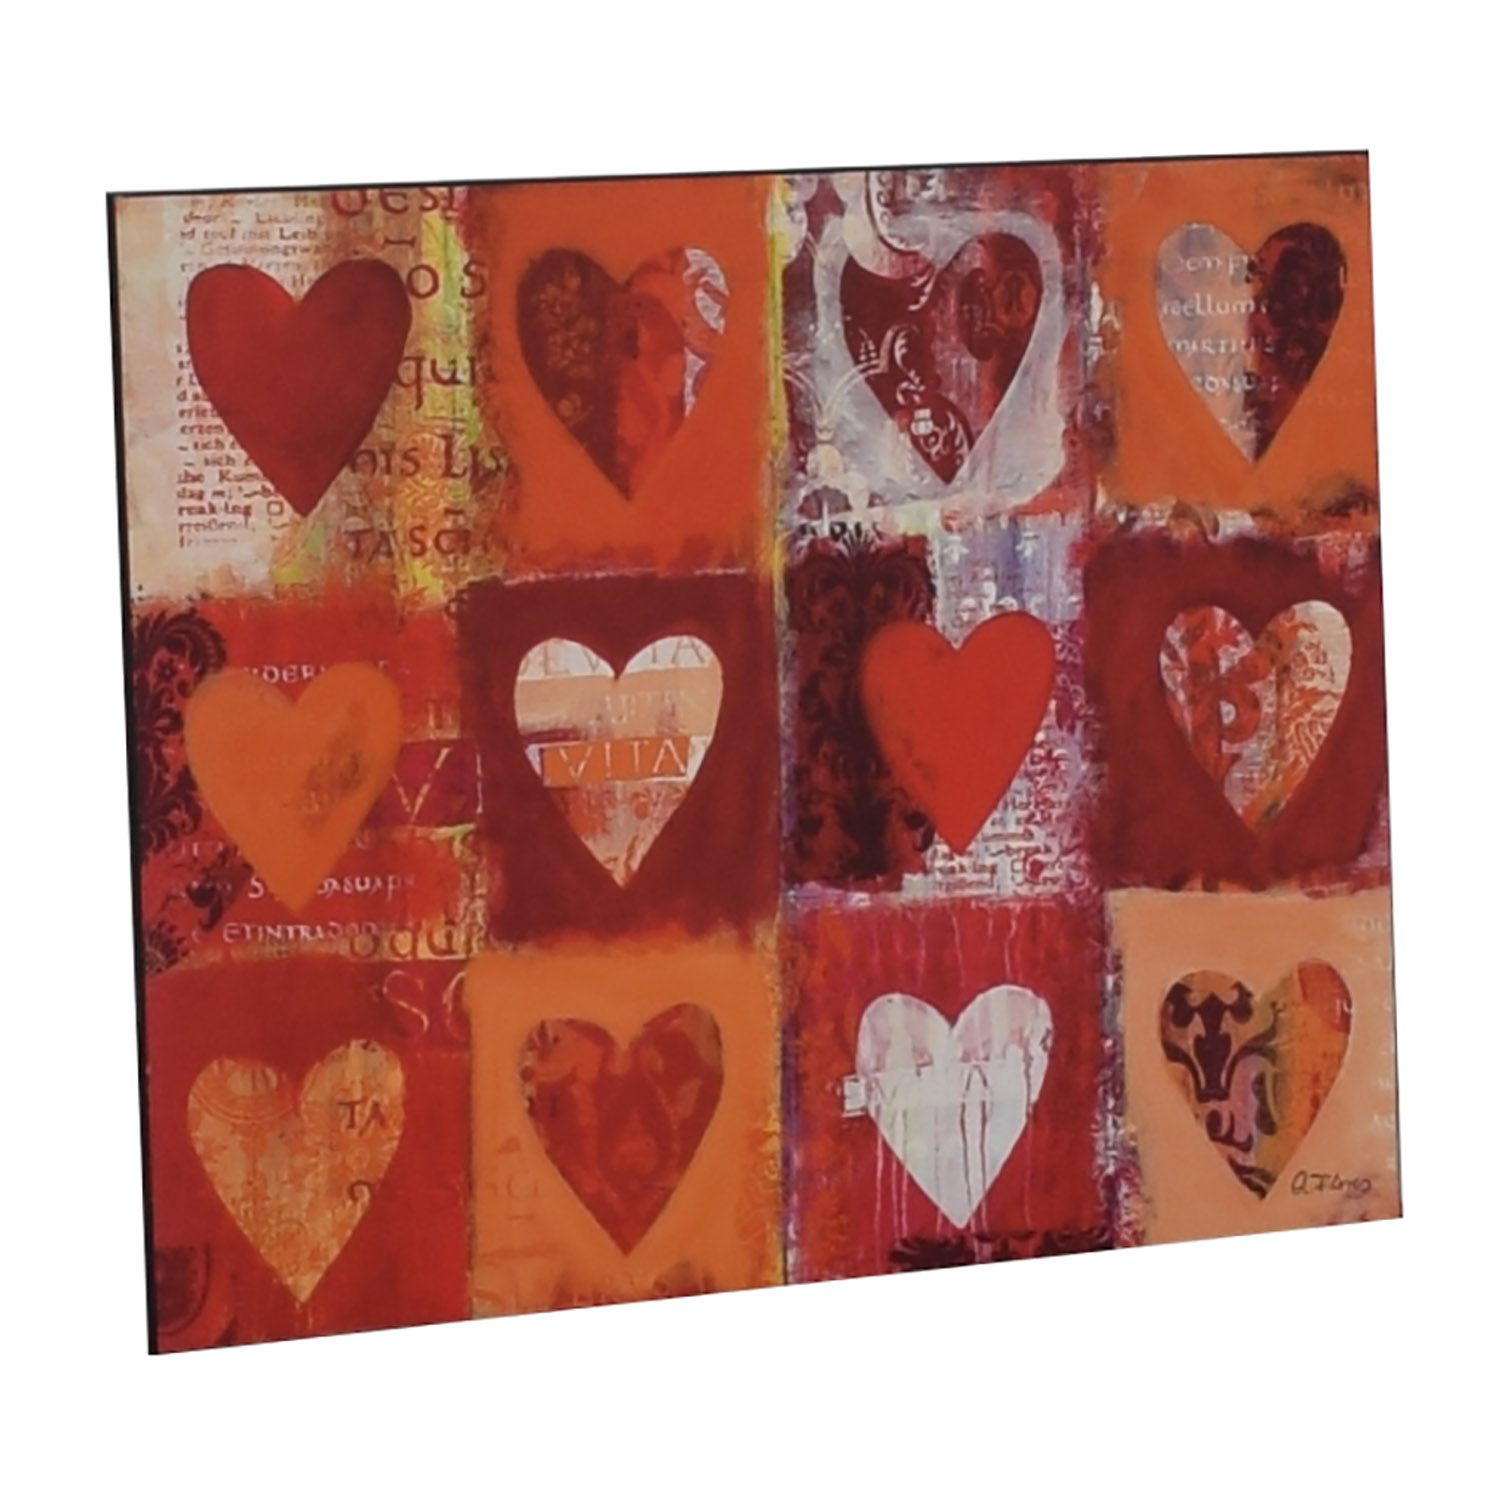 Anna Flores Signed Delightful Hearts Wall Art for sale